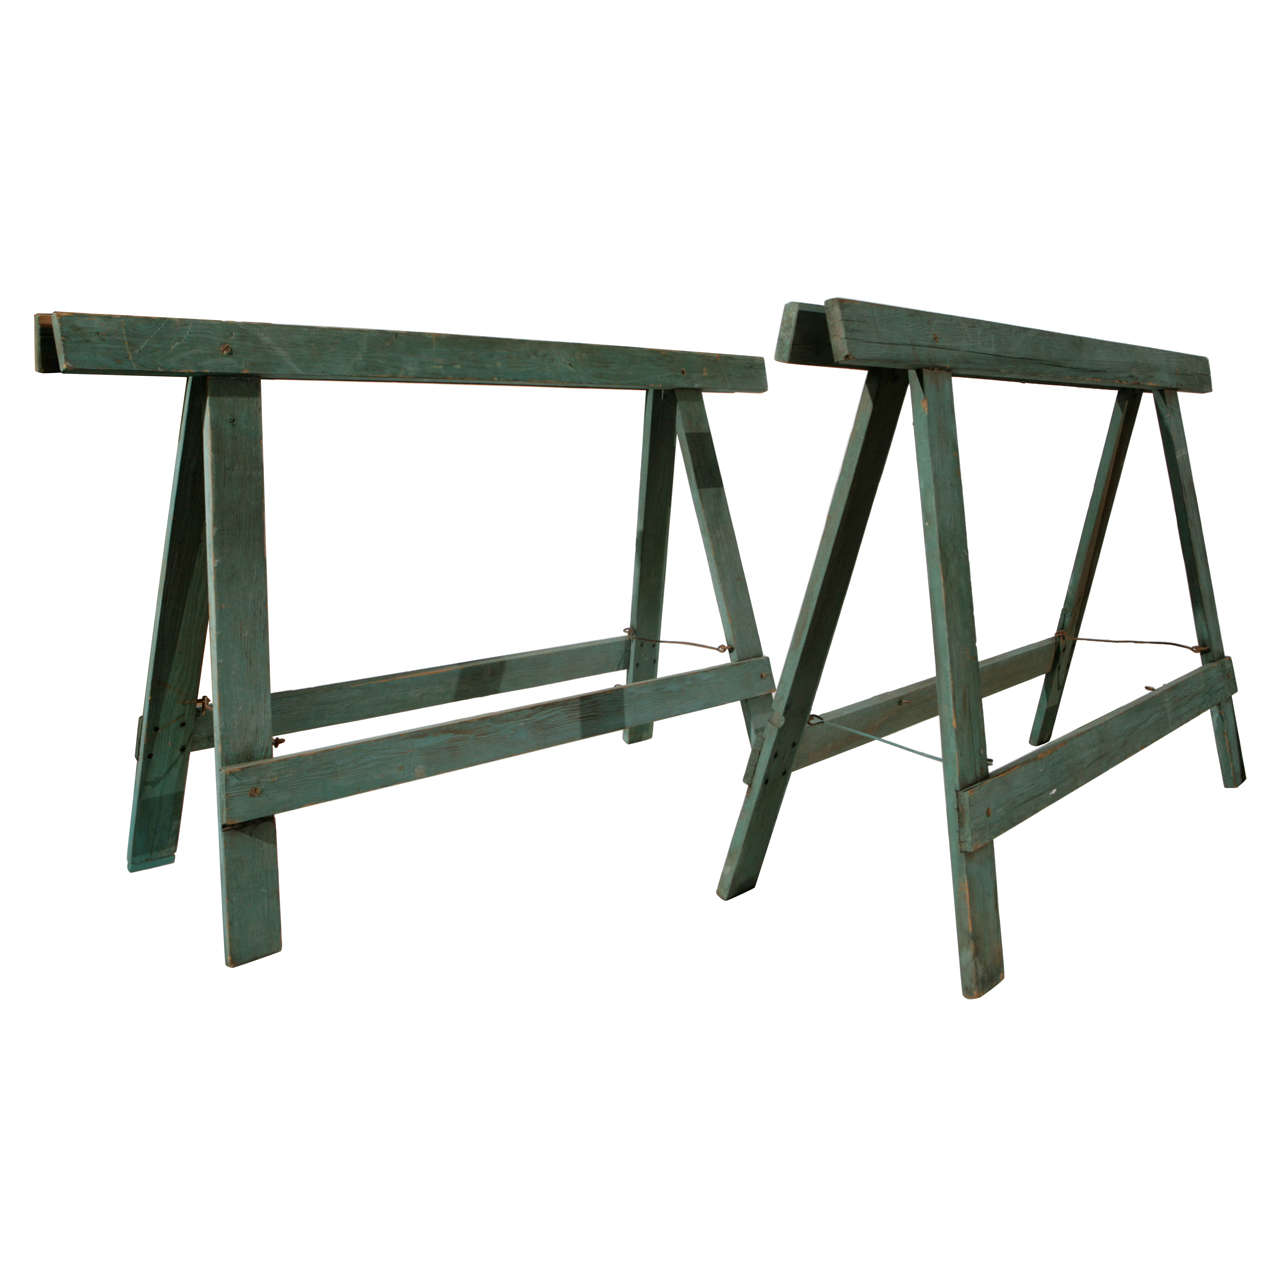 1940s Sawhorse Work Table Legs For